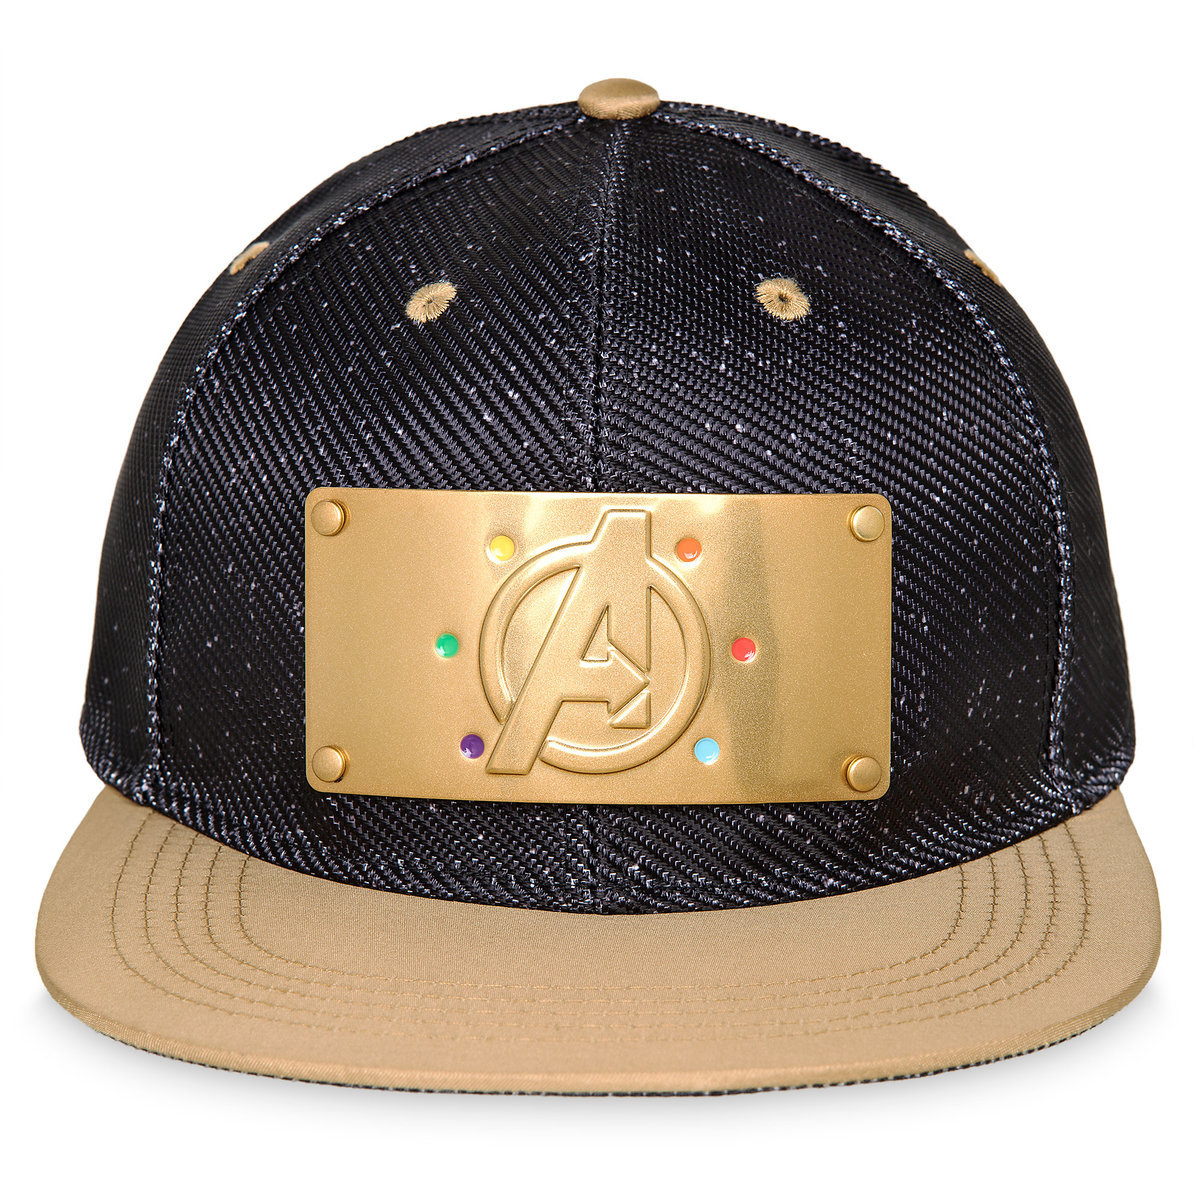 4f1502c2 Product Image of Marvel's Avengers: Infinity War Fitted Hat for Adults # 1